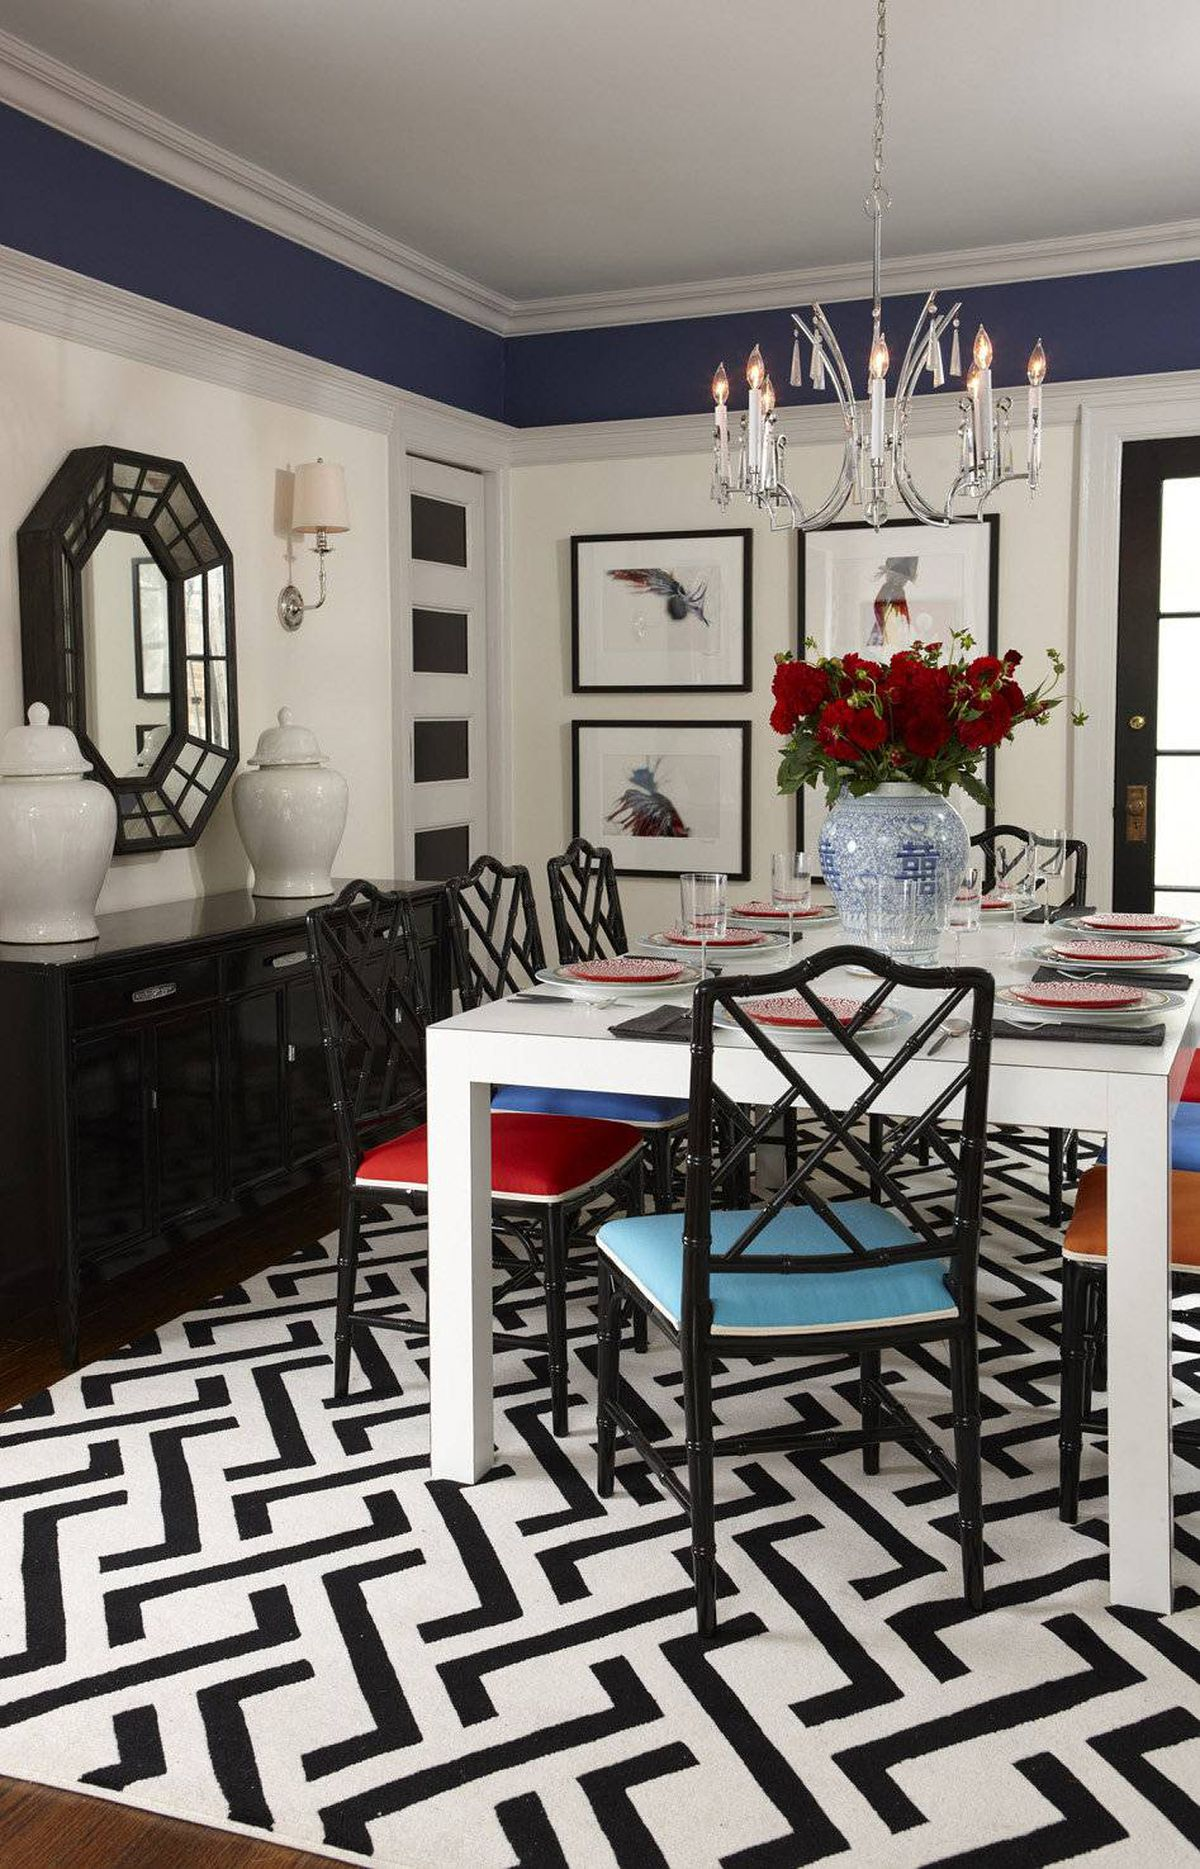 ADD A YOUTHFUL ENERGY Try painting the woodwork in a light, silvery tone, then turning colour theory upside down by going darker in the space above the plate rail. Expand the view by highlighting window frames and recessed door panels with black paint to pull the sightlines through the space.